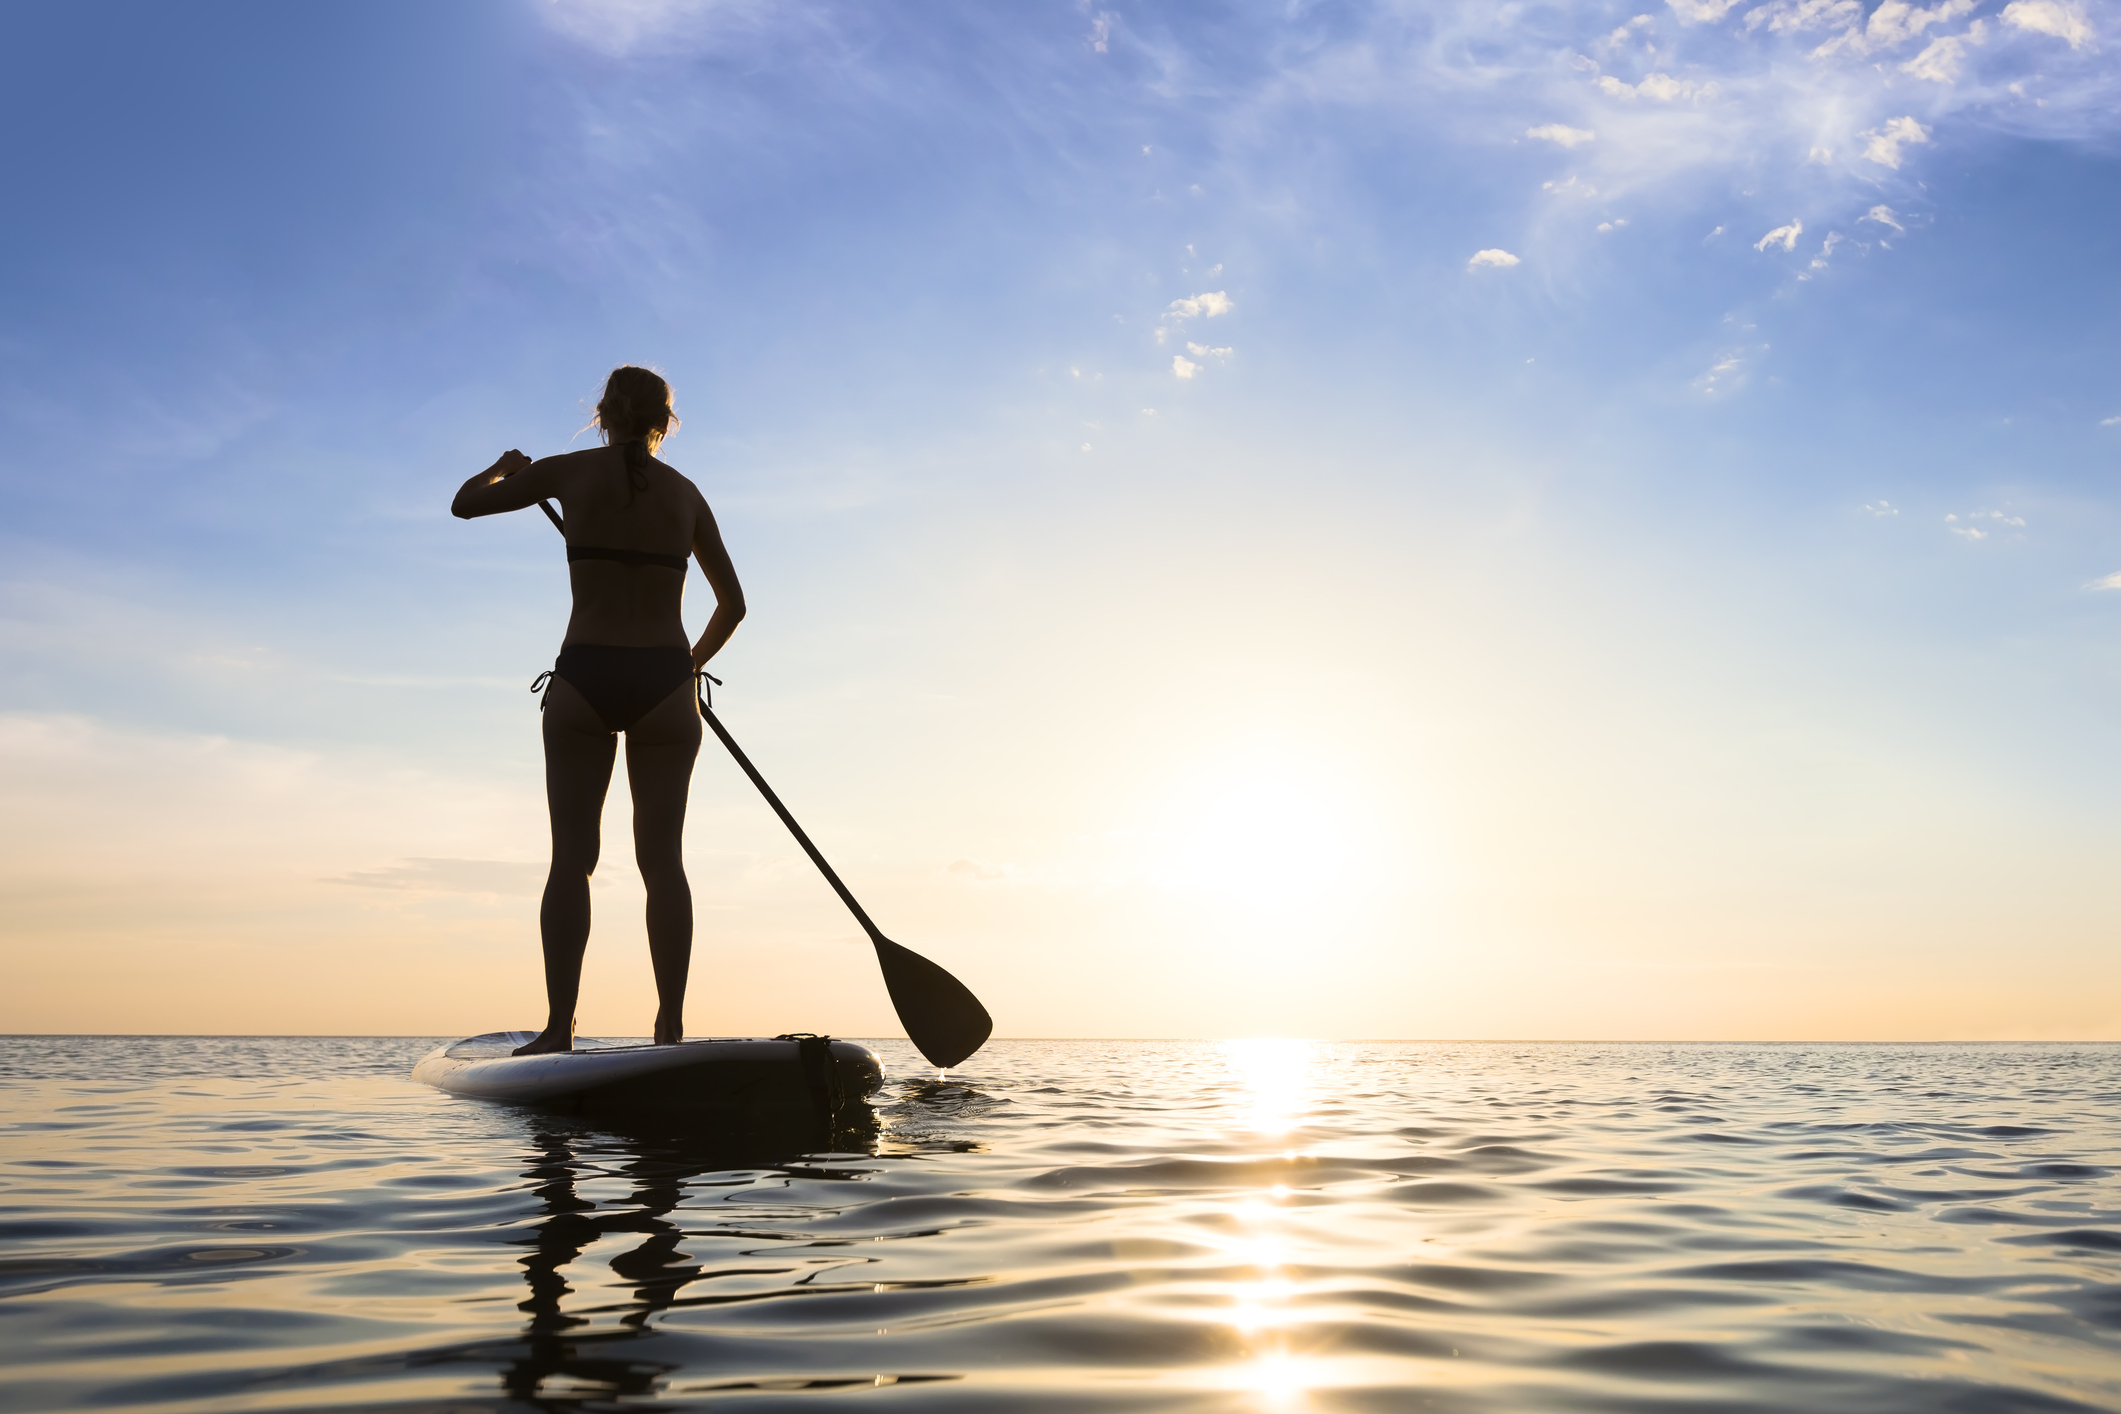 Girl Stand Up Paddle Boarding (sup) On Quiet Sea At Sunset